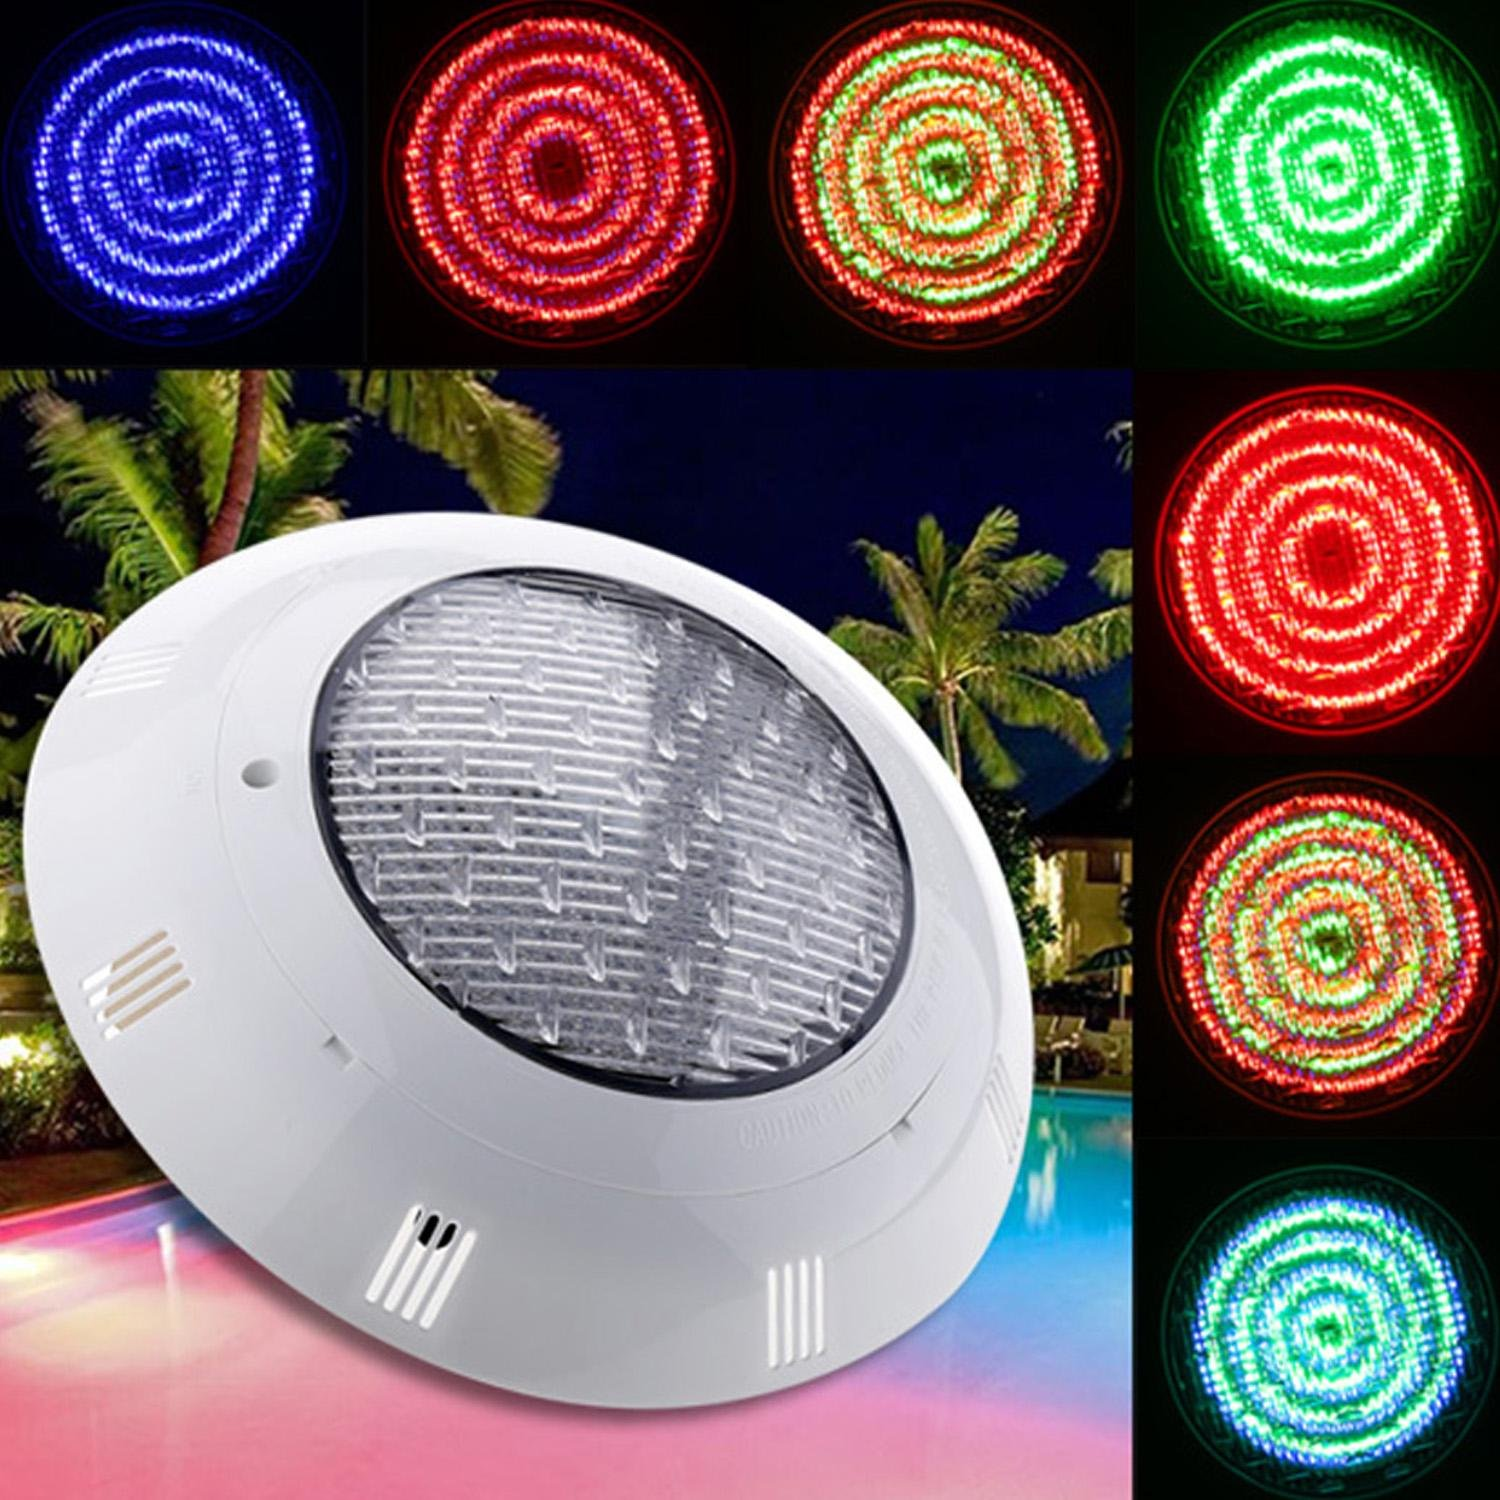 558 LED Underwater Swimming Pool Light, 33W 12V Changing Fountains Lamp with Remote Control